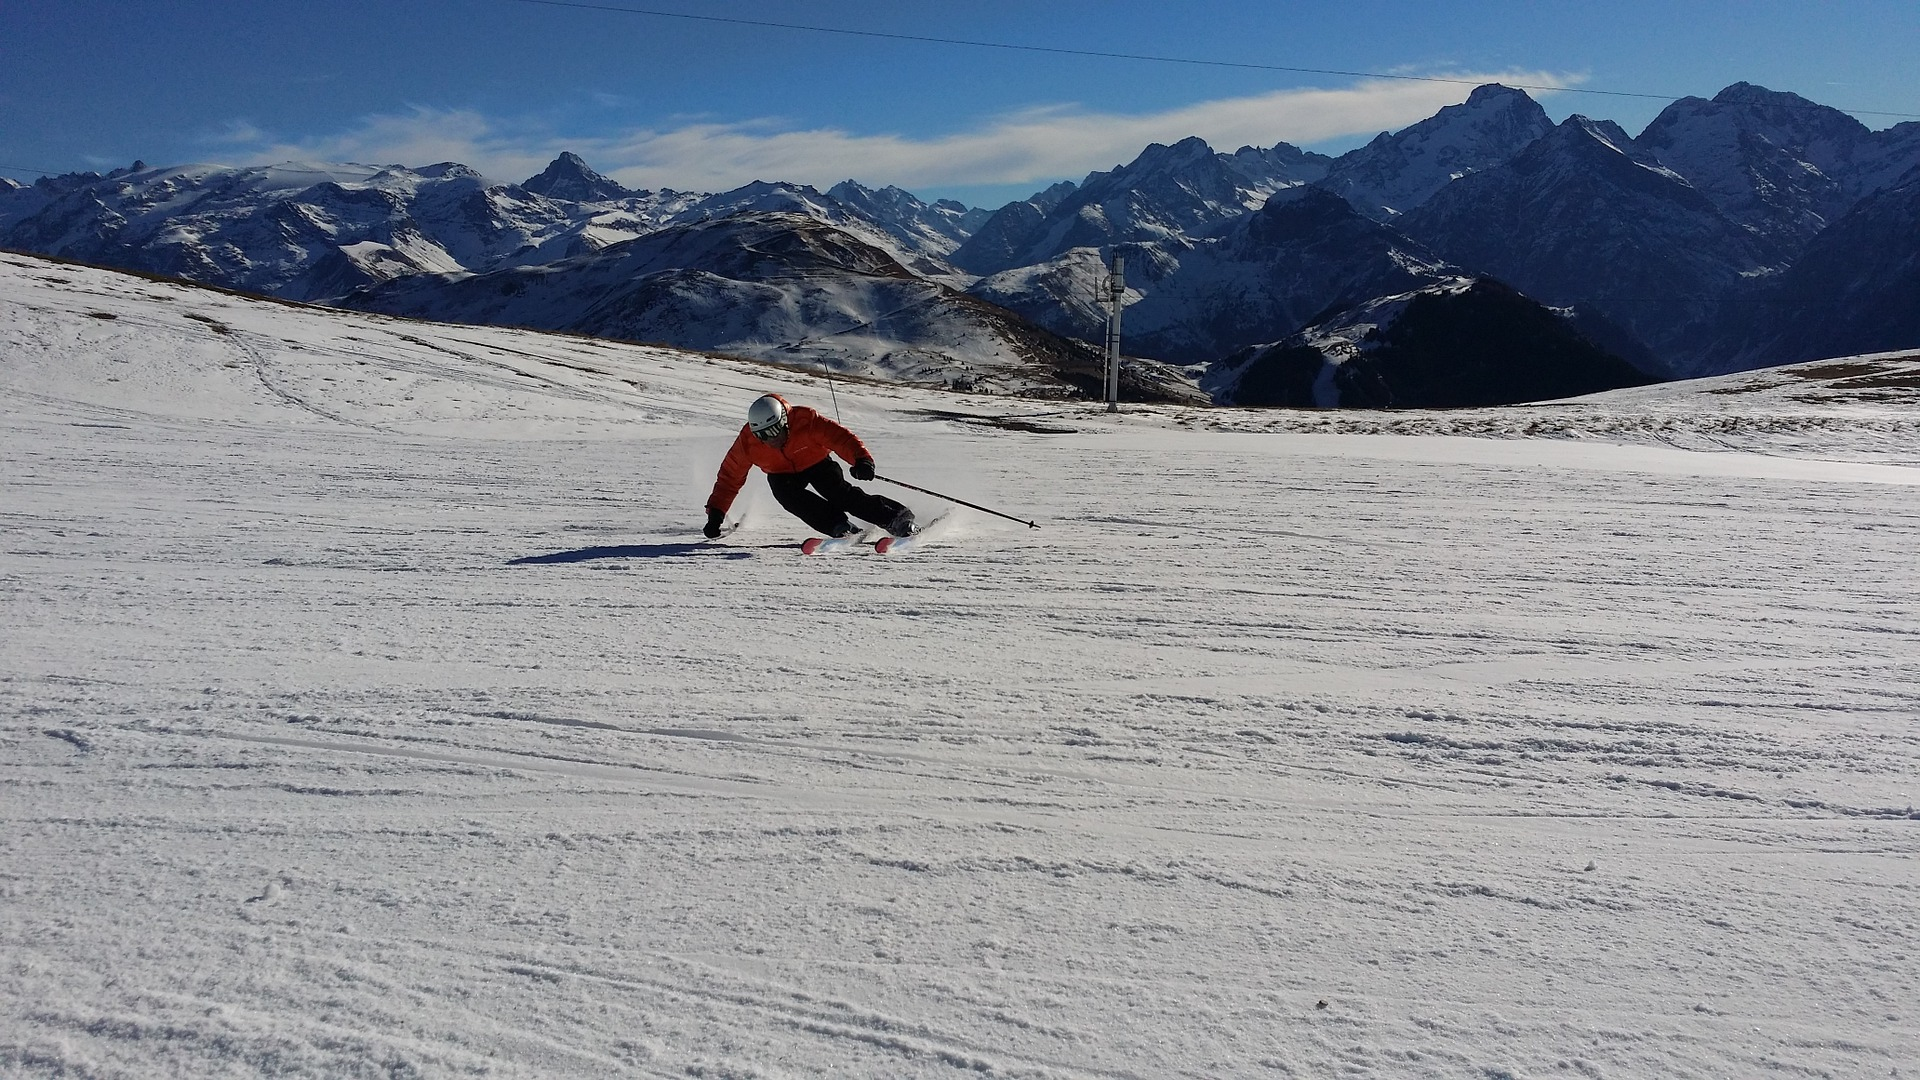 Things You Need To Know Before Learning To Ski